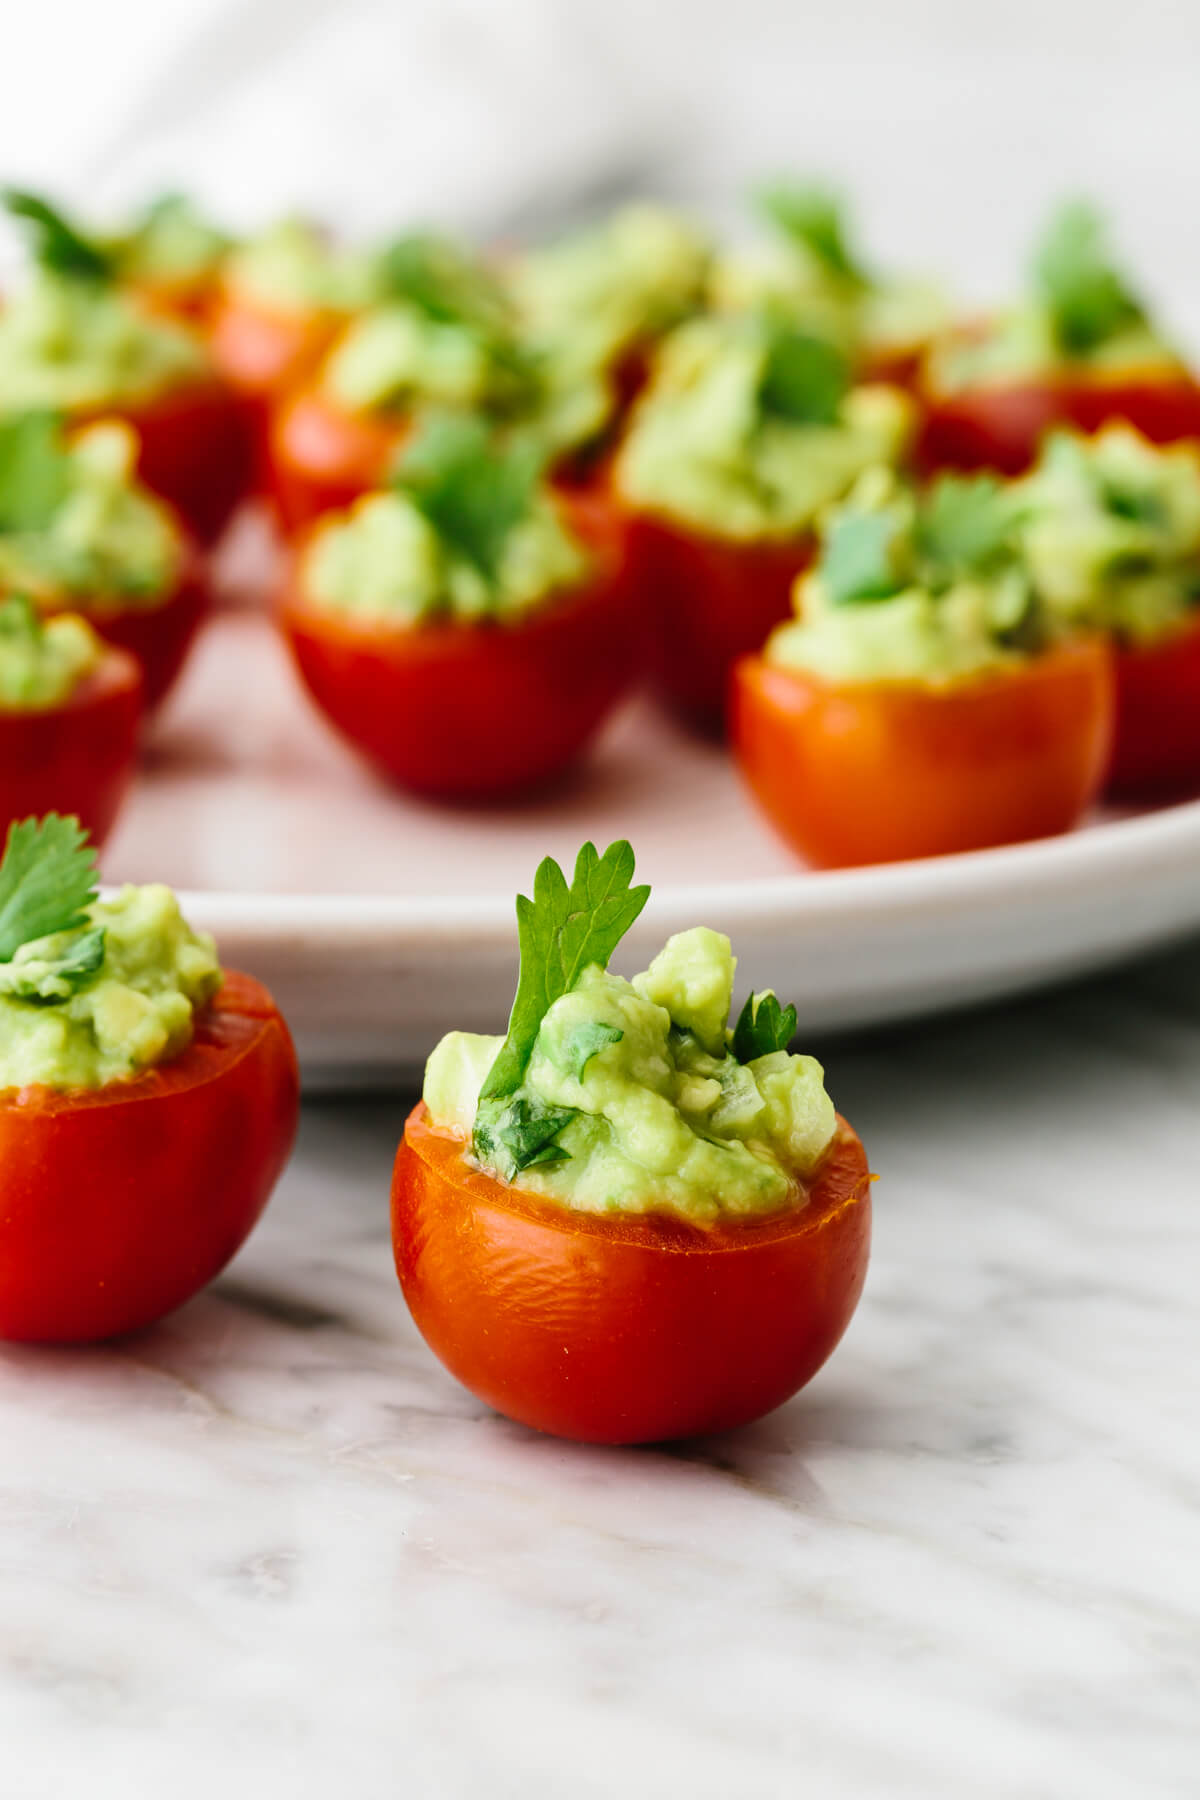 A plate with guacamole stuffed tomatoes.